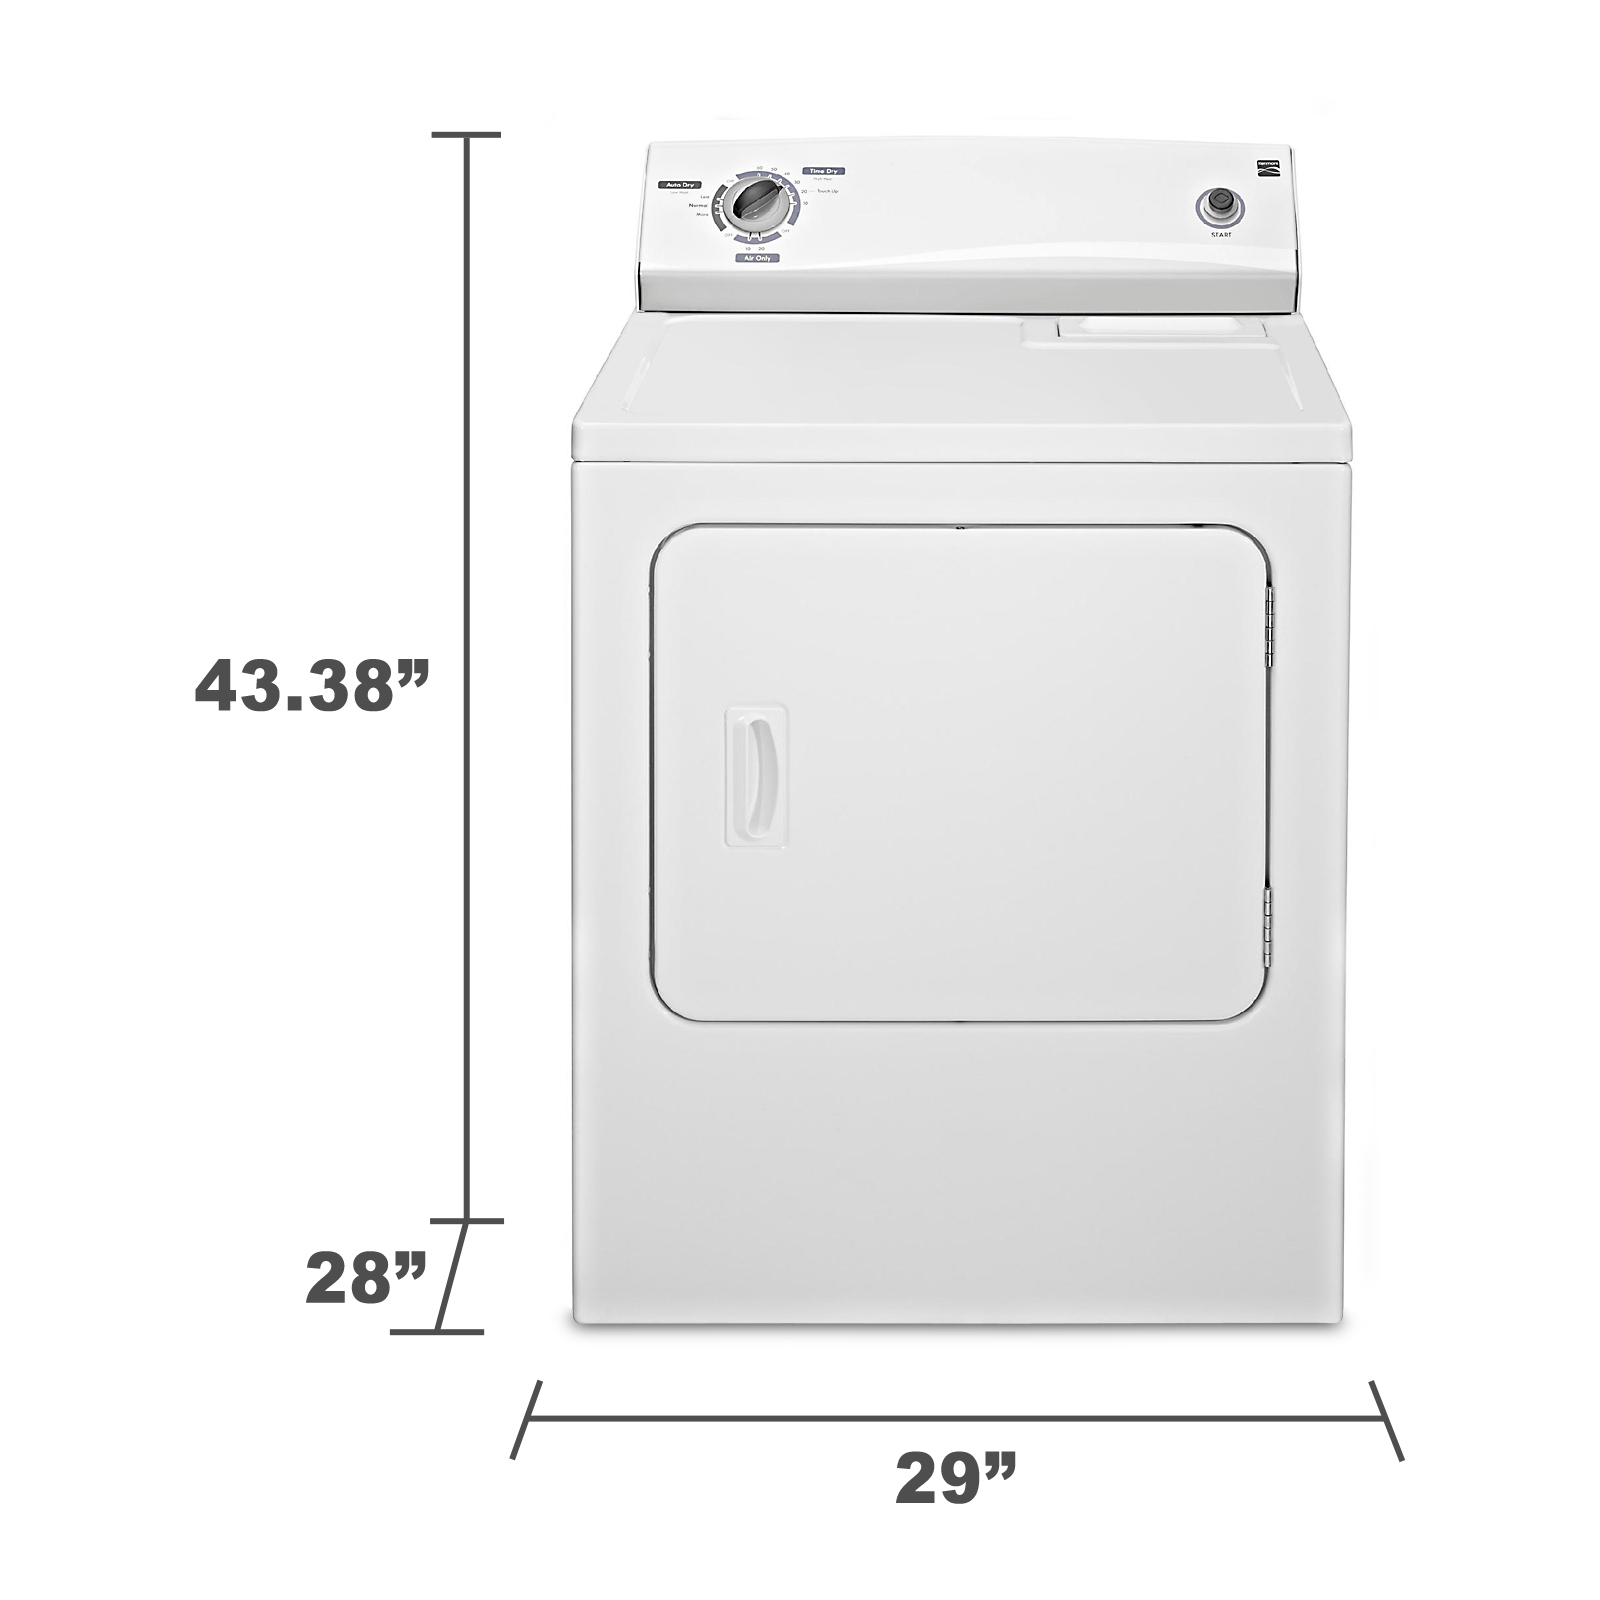 Kenmore 6.5 cu. ft. Gas Dryer - White